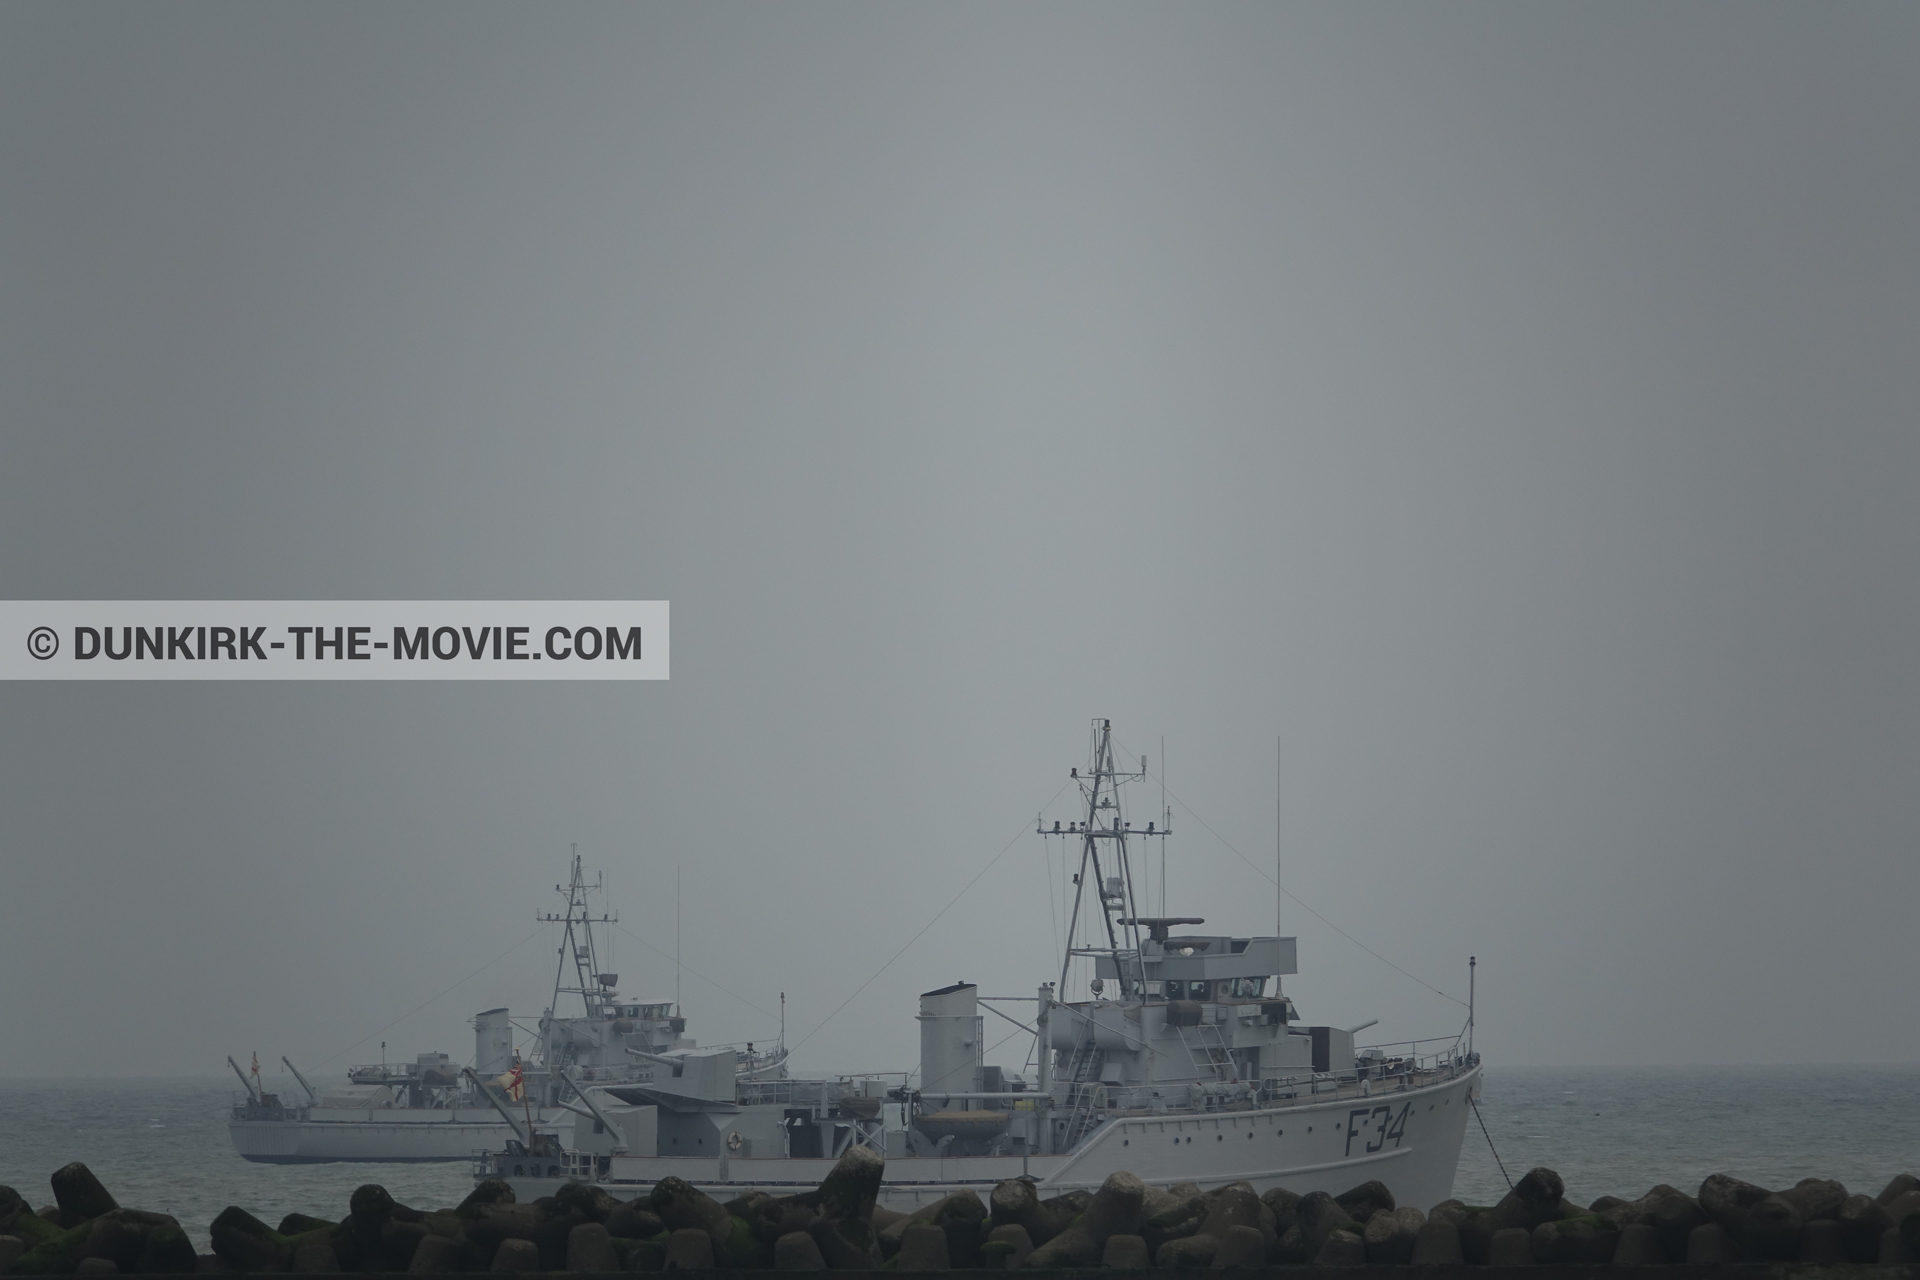 Picture with boat, grey sky, F34 - Hr.Ms. Sittard,  from behind the scene of the Dunkirk movie by Nolan